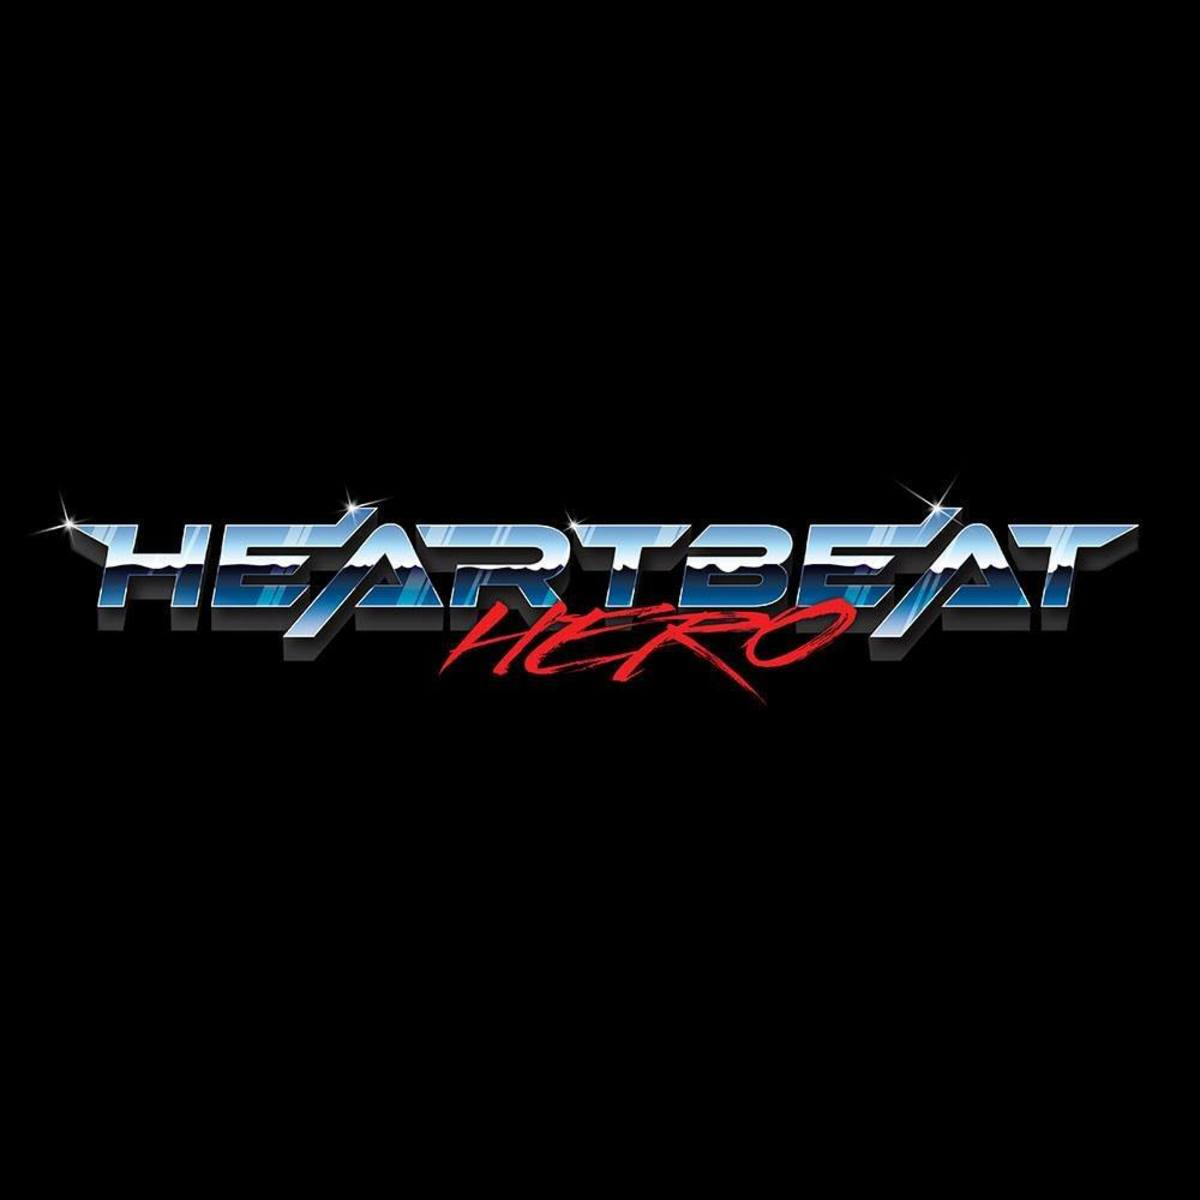 An Interview with Synthwave Artist HeartBeatHero